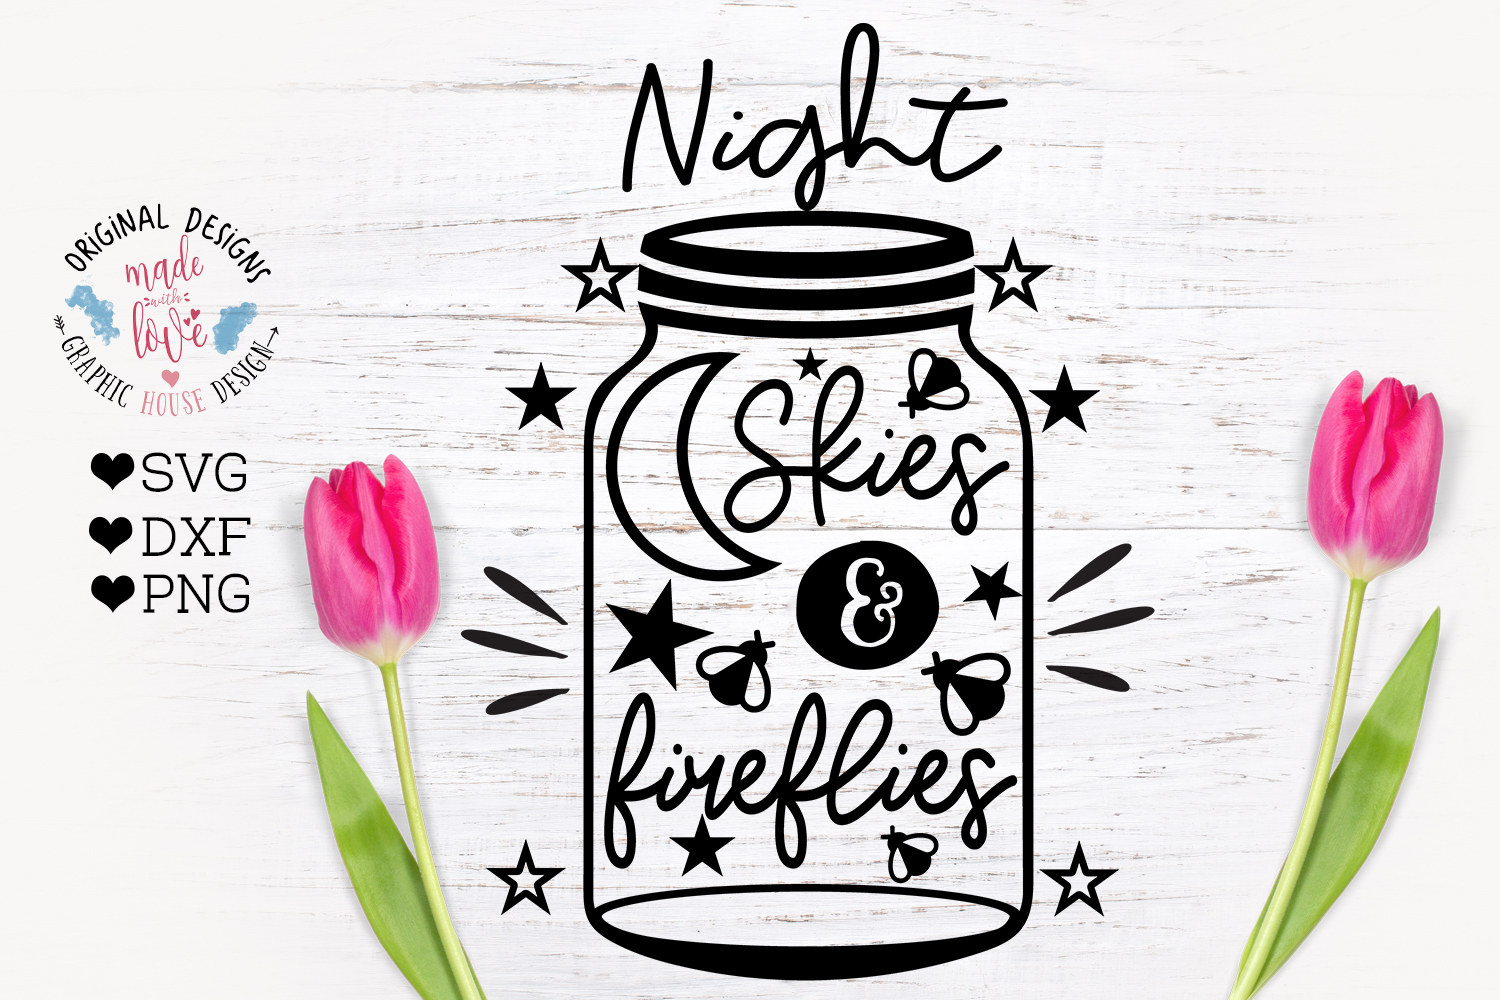 Night Skies and Fireflies - Summer Porch Decor SVG example image 2